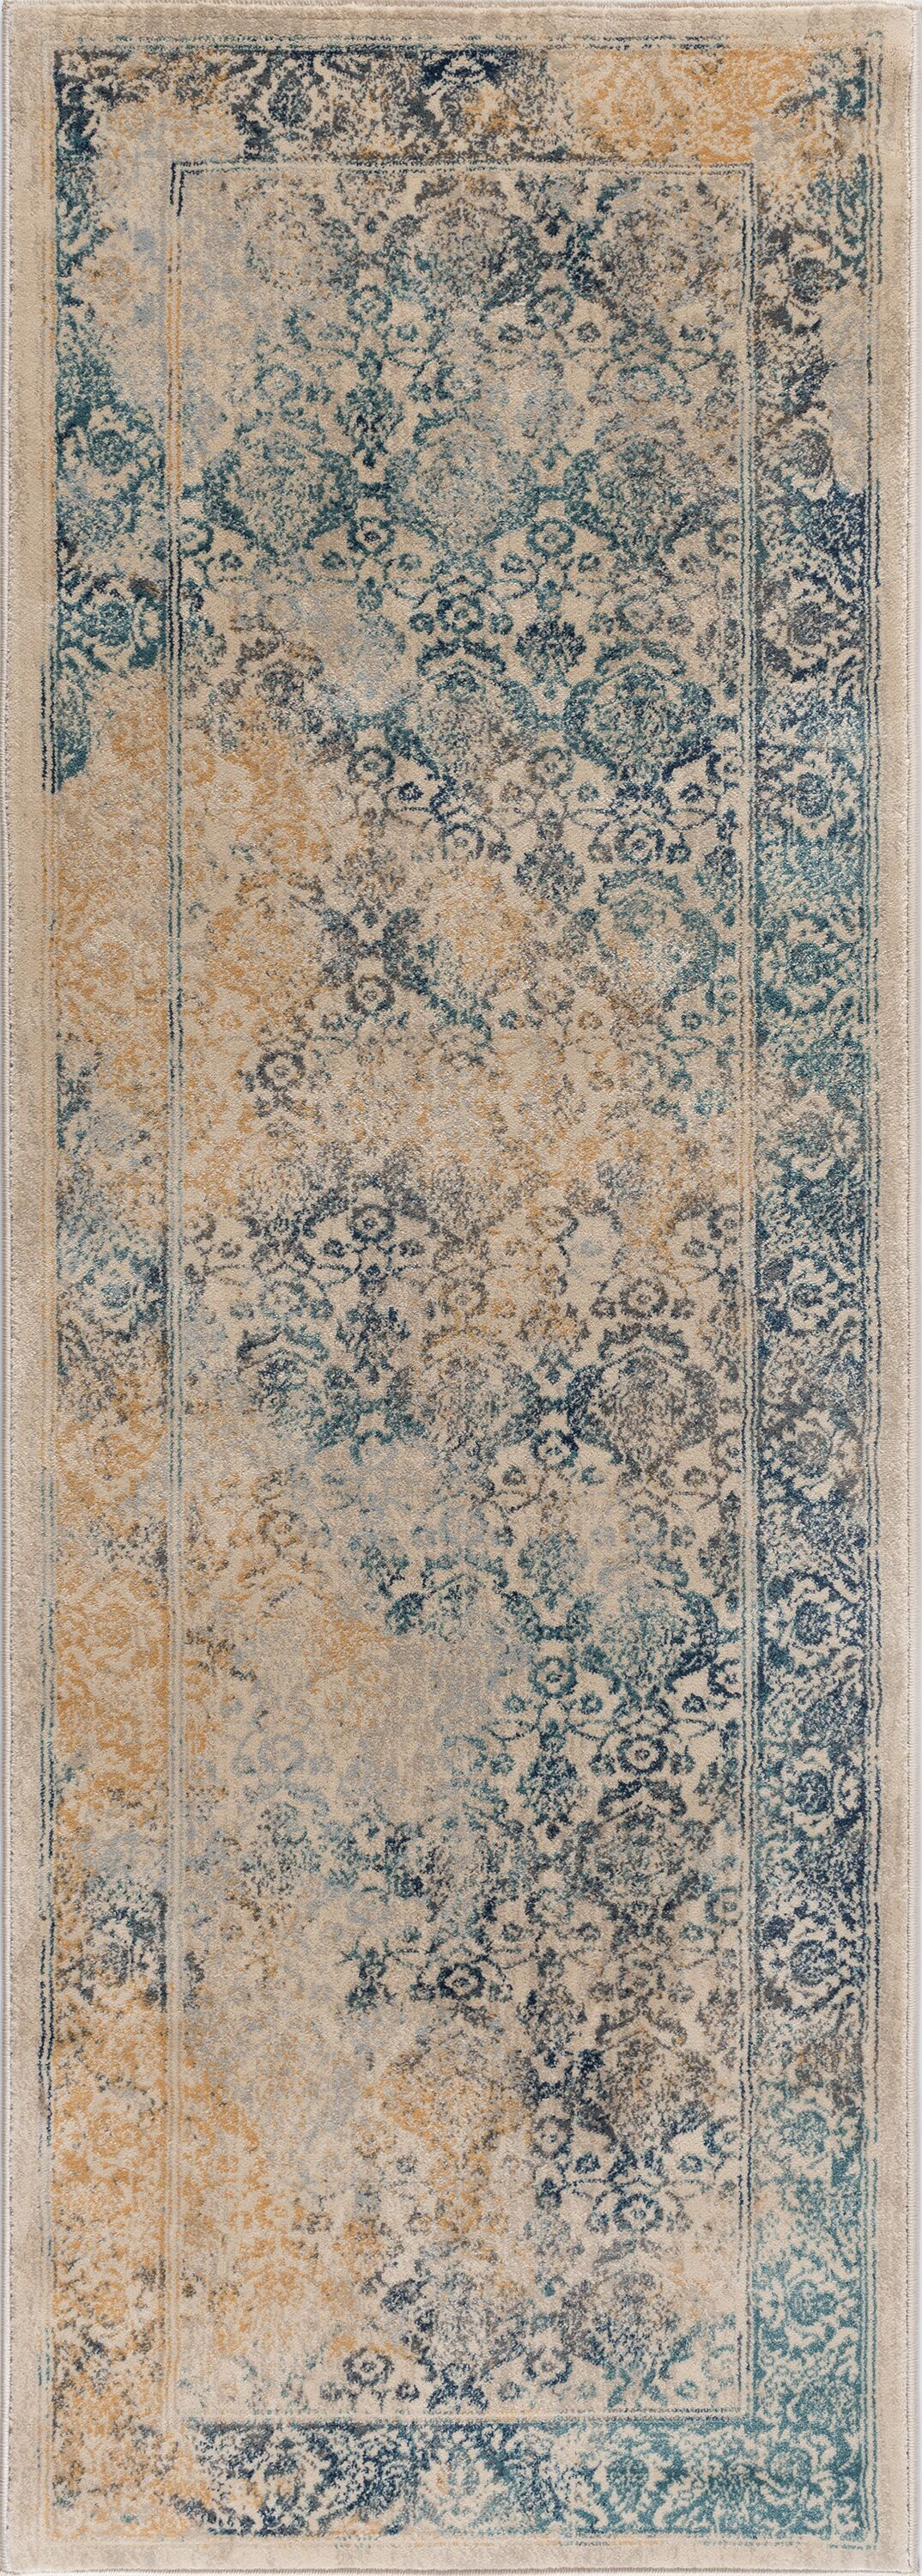 Aquila Blue/Yellow & Gold Area Rug Rug Size: 2'7'' x 7'3''